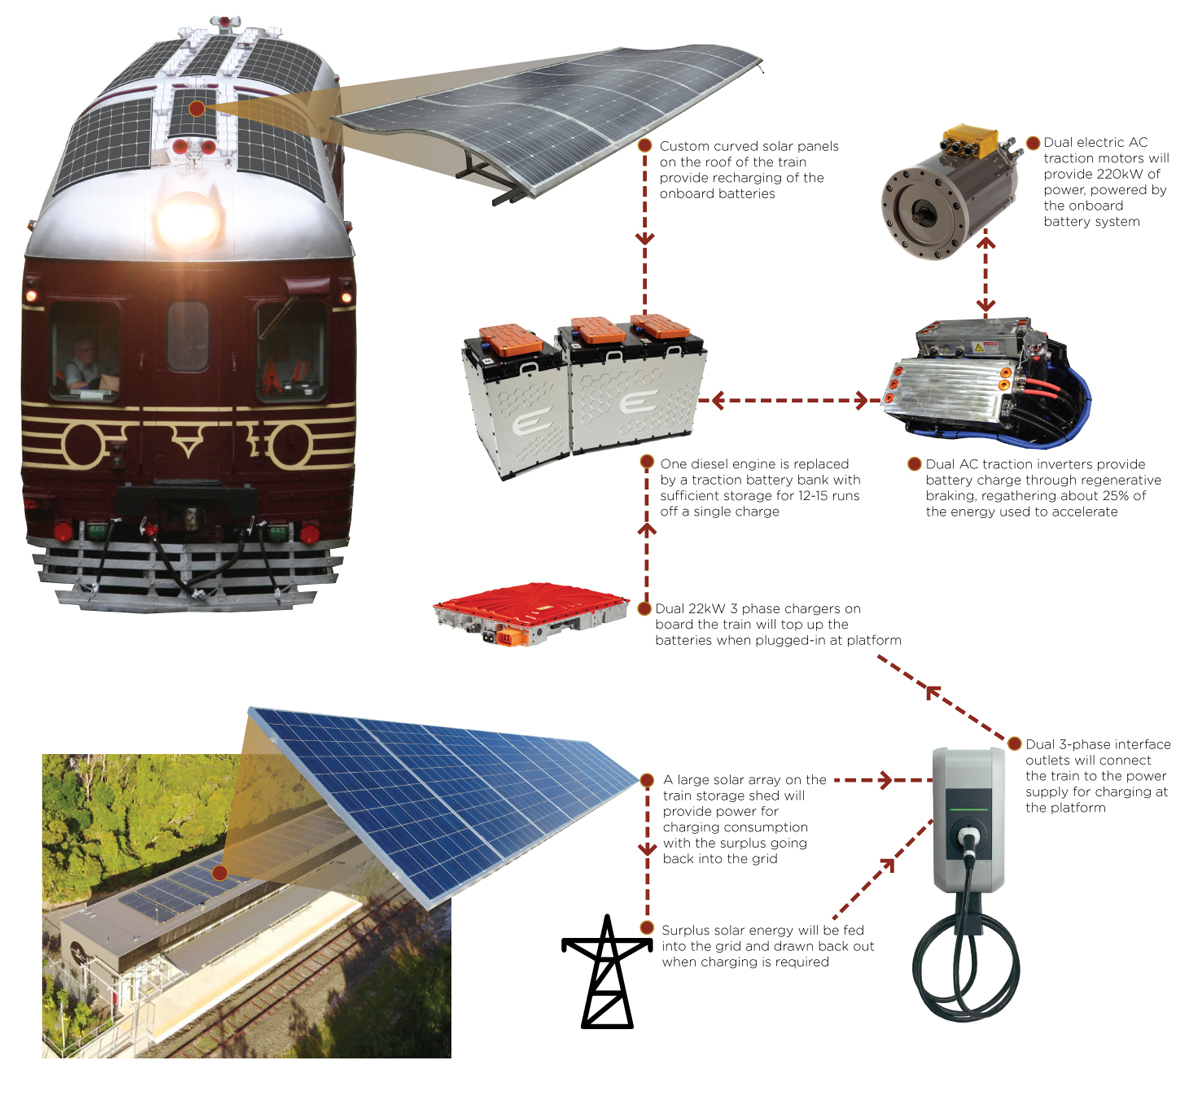 hight resolution of byron bay railroad company are proudly working with the following partners experts and suppliers to deliver the solar conversion project